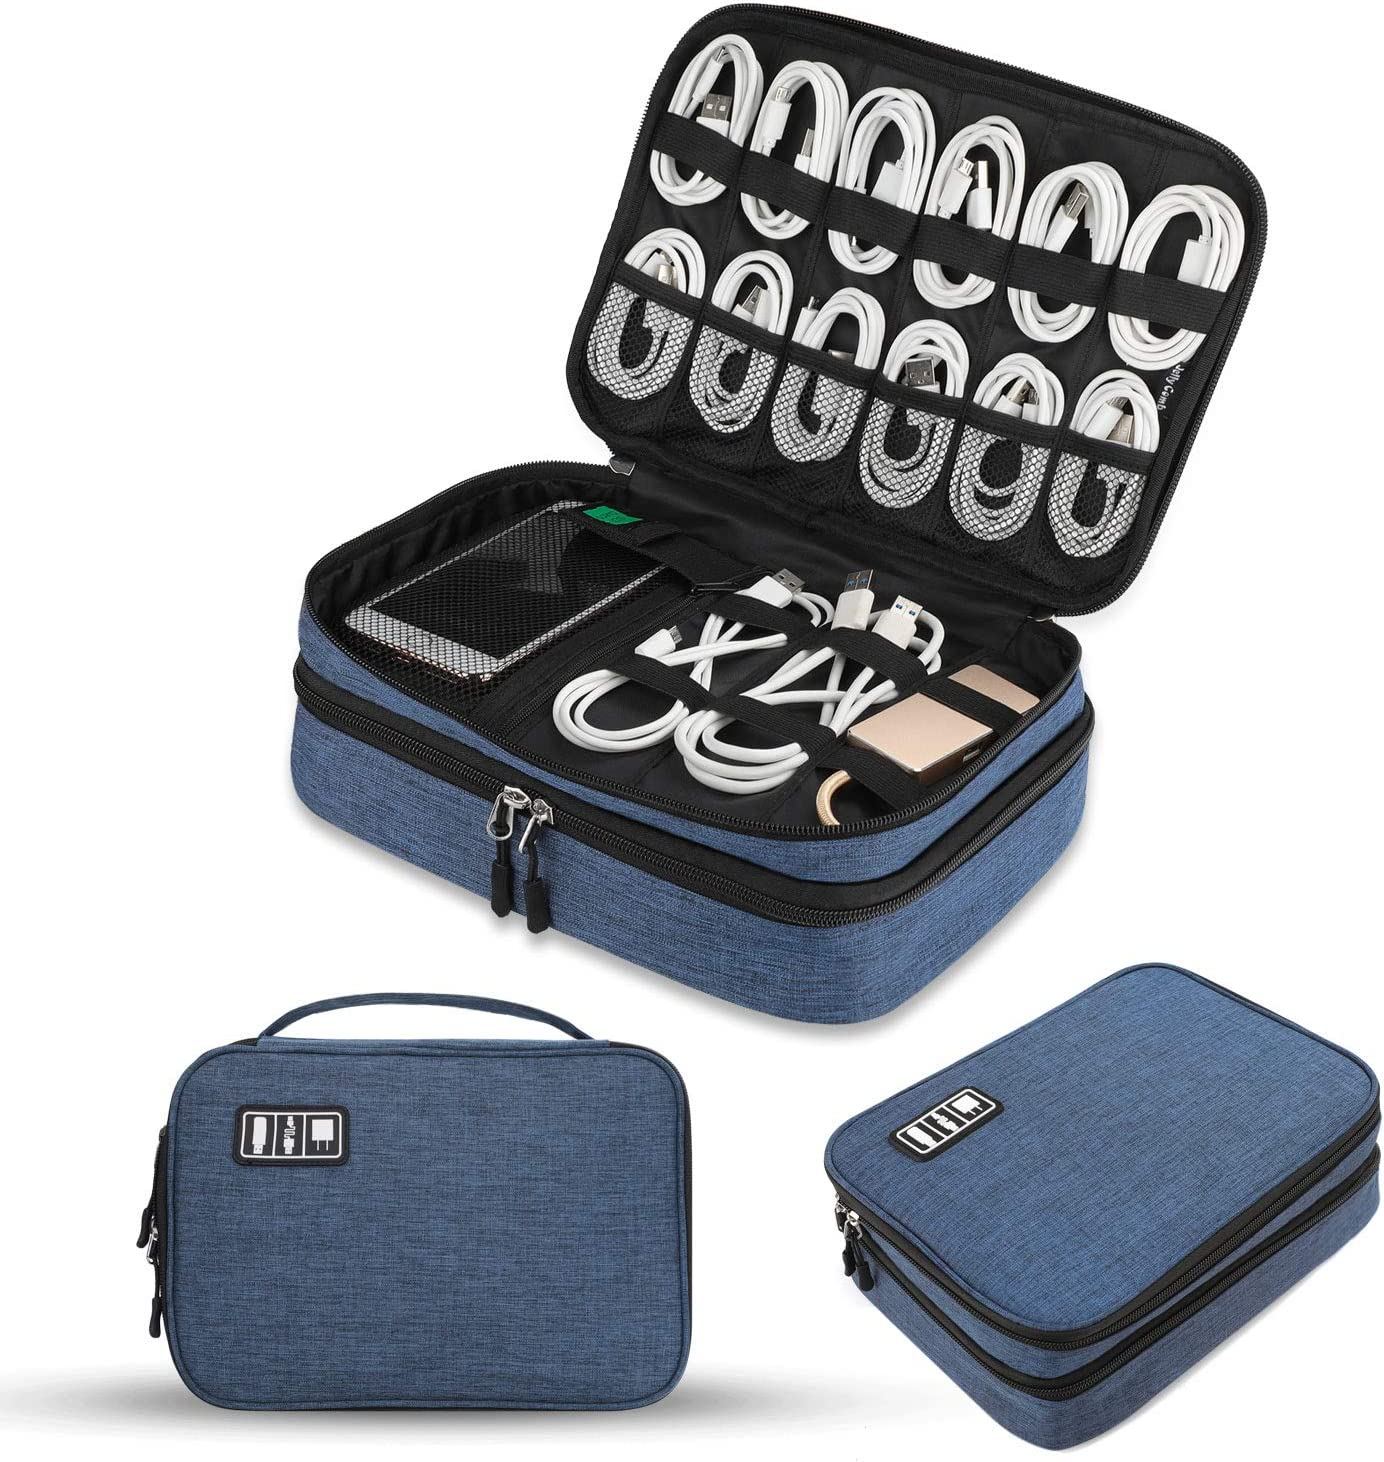 Electronics Organizer, Jelly Comb Electronic Accessories Cable Organizer Bag Double Layer Travel Cable Storage Bag for Cables, Laptop Charger, Tablet (Up to 11'') and More-Thick Large(Black and Blue)